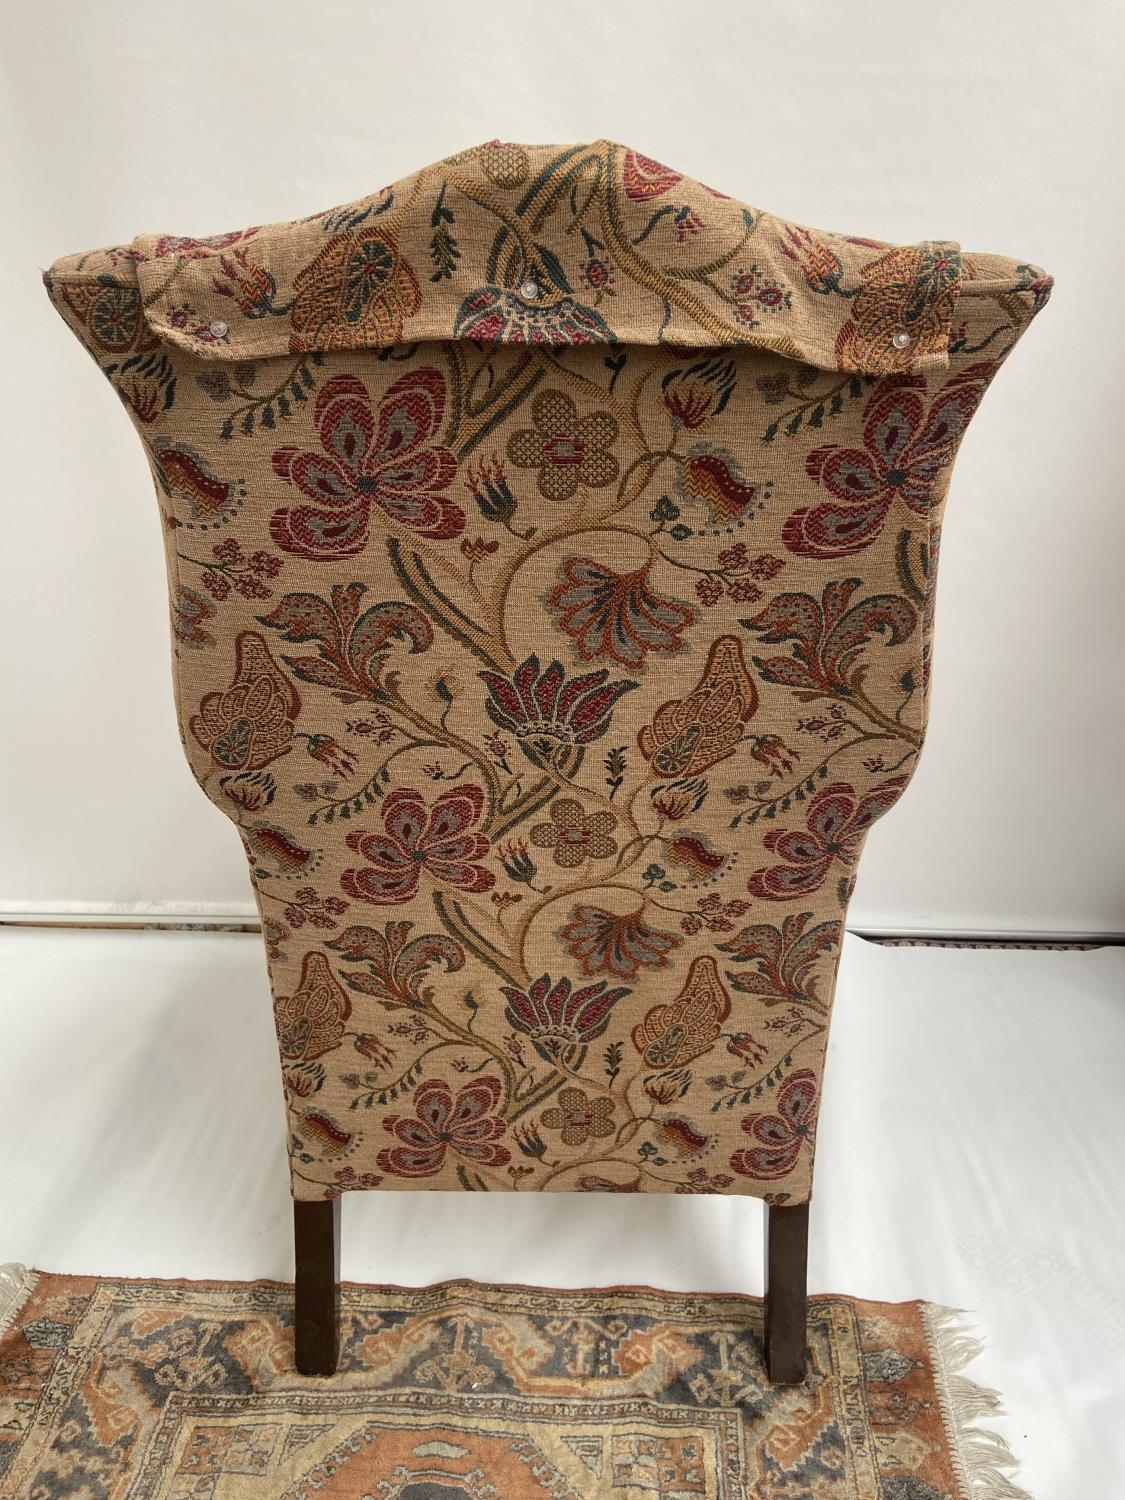 Antique gull wing arm chair. [back 114cm] [seat area 50cm] - Image 5 of 5